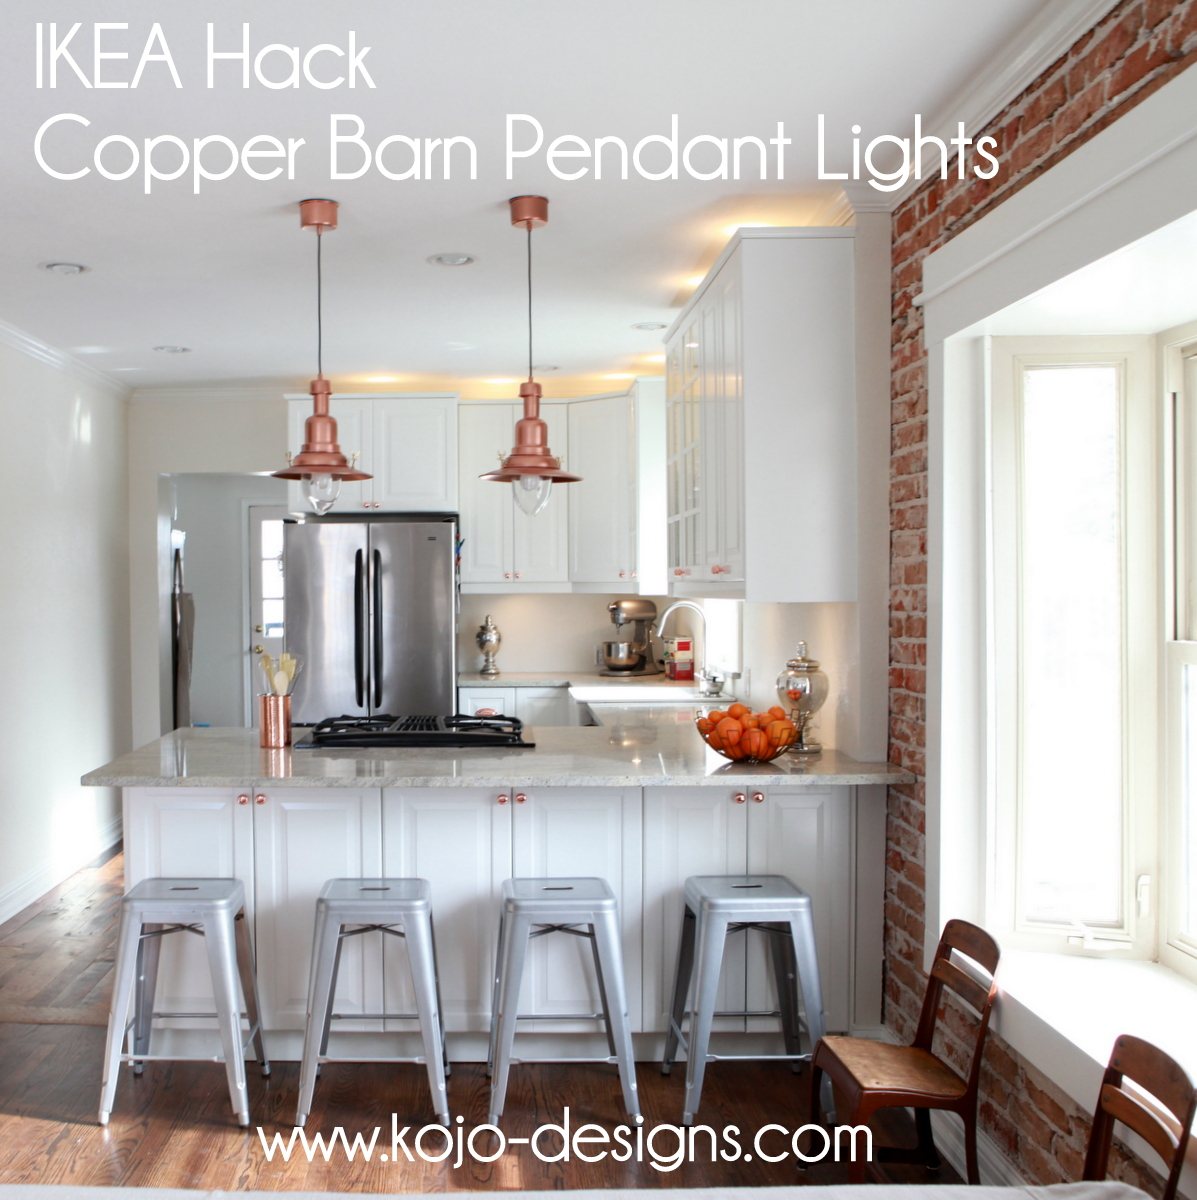 Copper barn light ikea hack ikea hack how to turn an ottava light into a copper barn pendant light mozeypictures